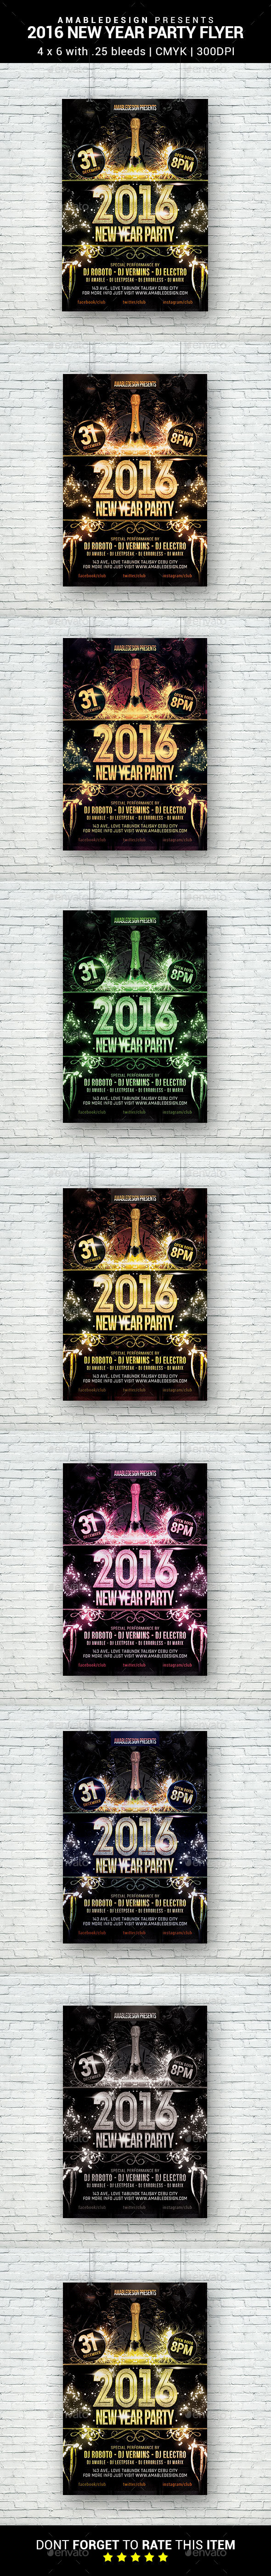 2016/2017 New Year Party Flyer - Clubs & Parties Events